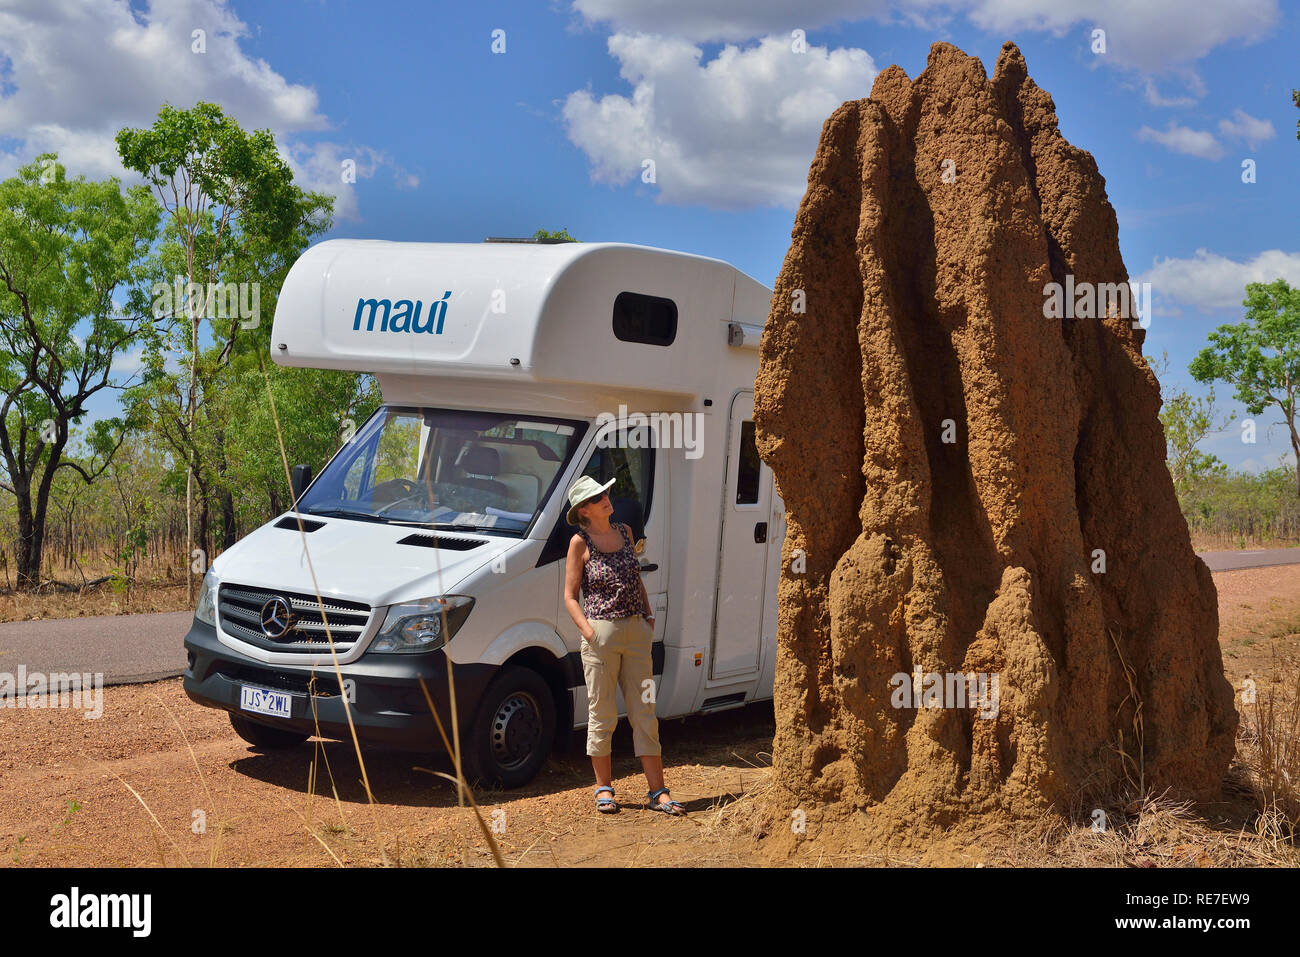 Motorhome tourist stops on the road side to look at a cathedral termite mound one of most iconic sites in Kakadu Northern Territories Australia Stock Photo